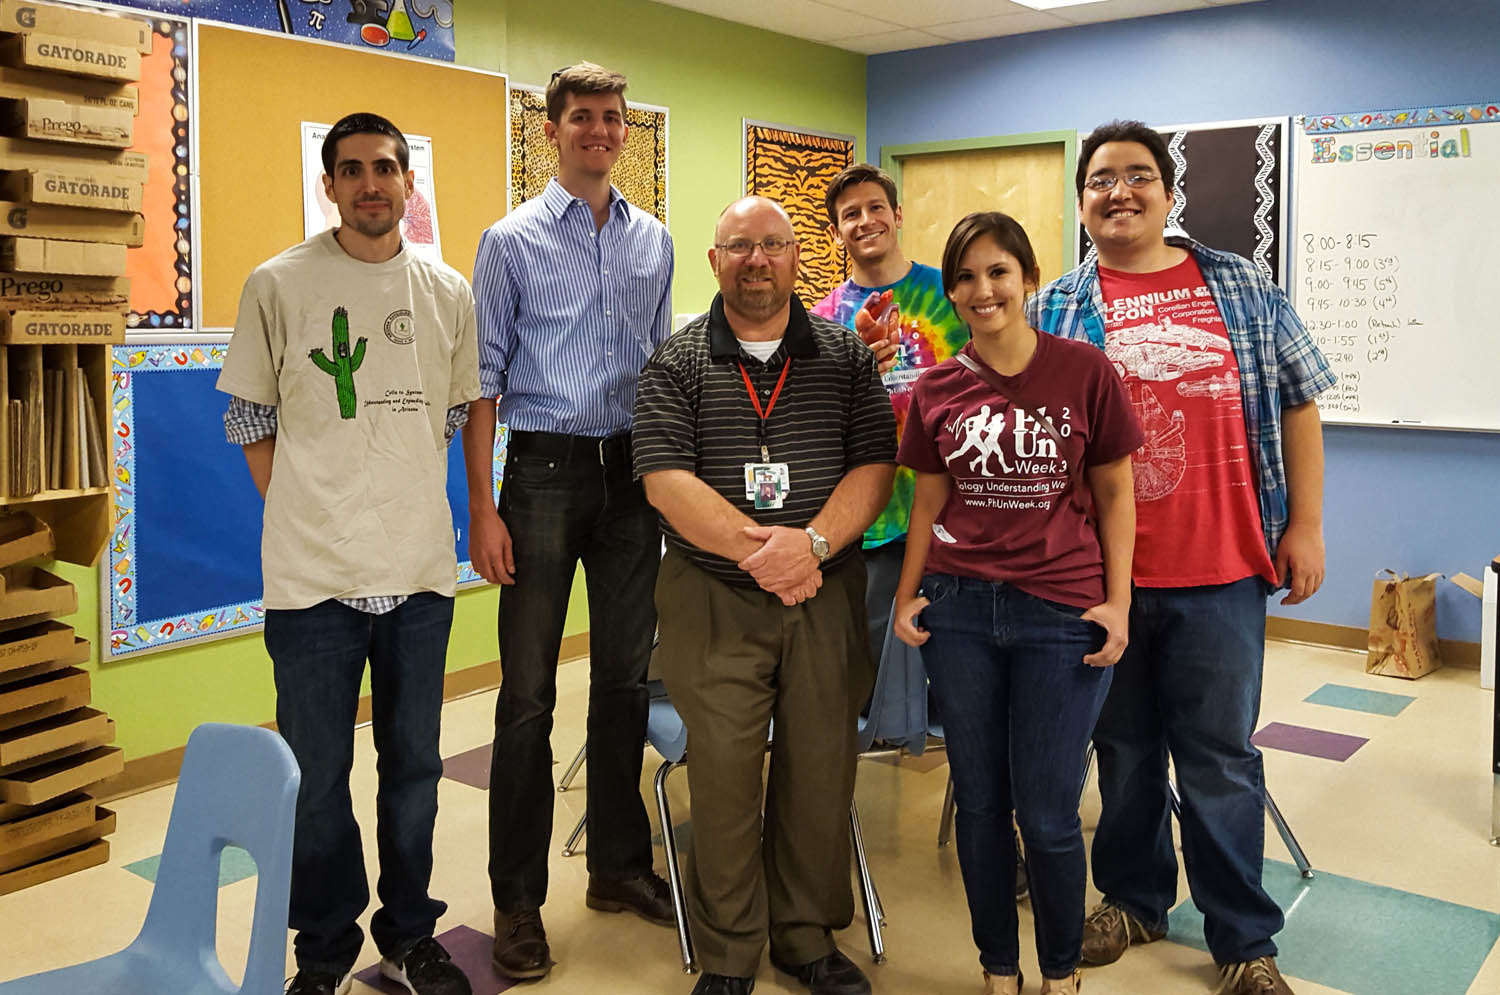 Some of the AZPS volunteers with Mr. Gordon (in the striped polo and lanyard).  That's me on the far right.